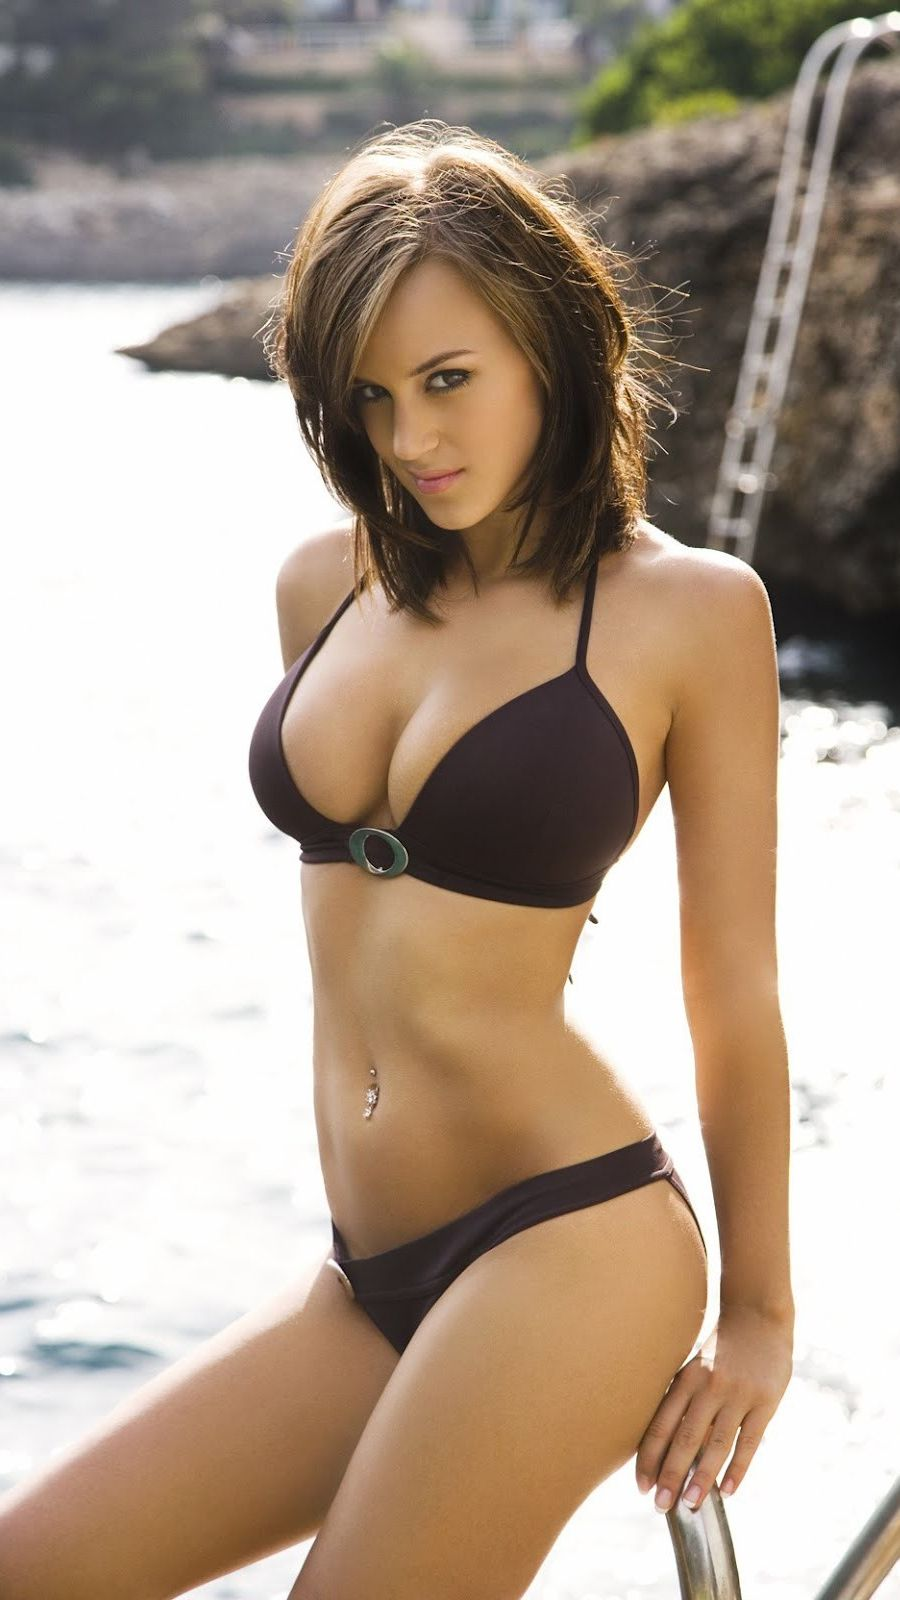 Rosie-Jones-Bikini-Girl-iPhone-Wallpaper | iPhone ...